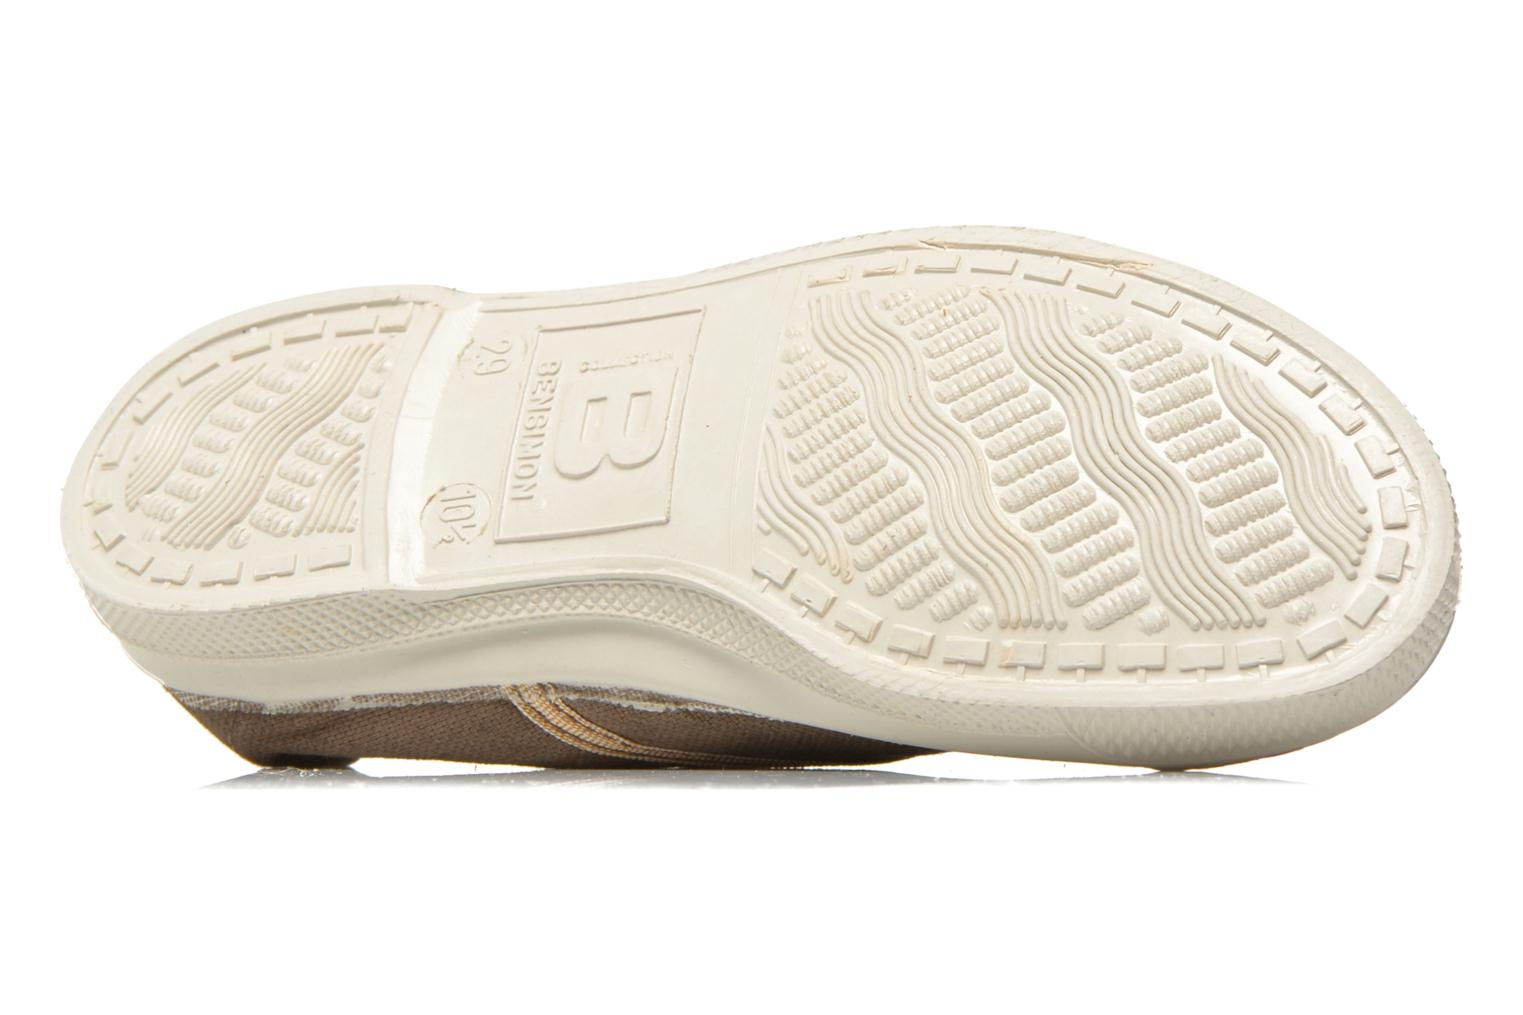 Deportivas Bensimon Tennis Lacets Shinypiping E Marrón vista de arriba